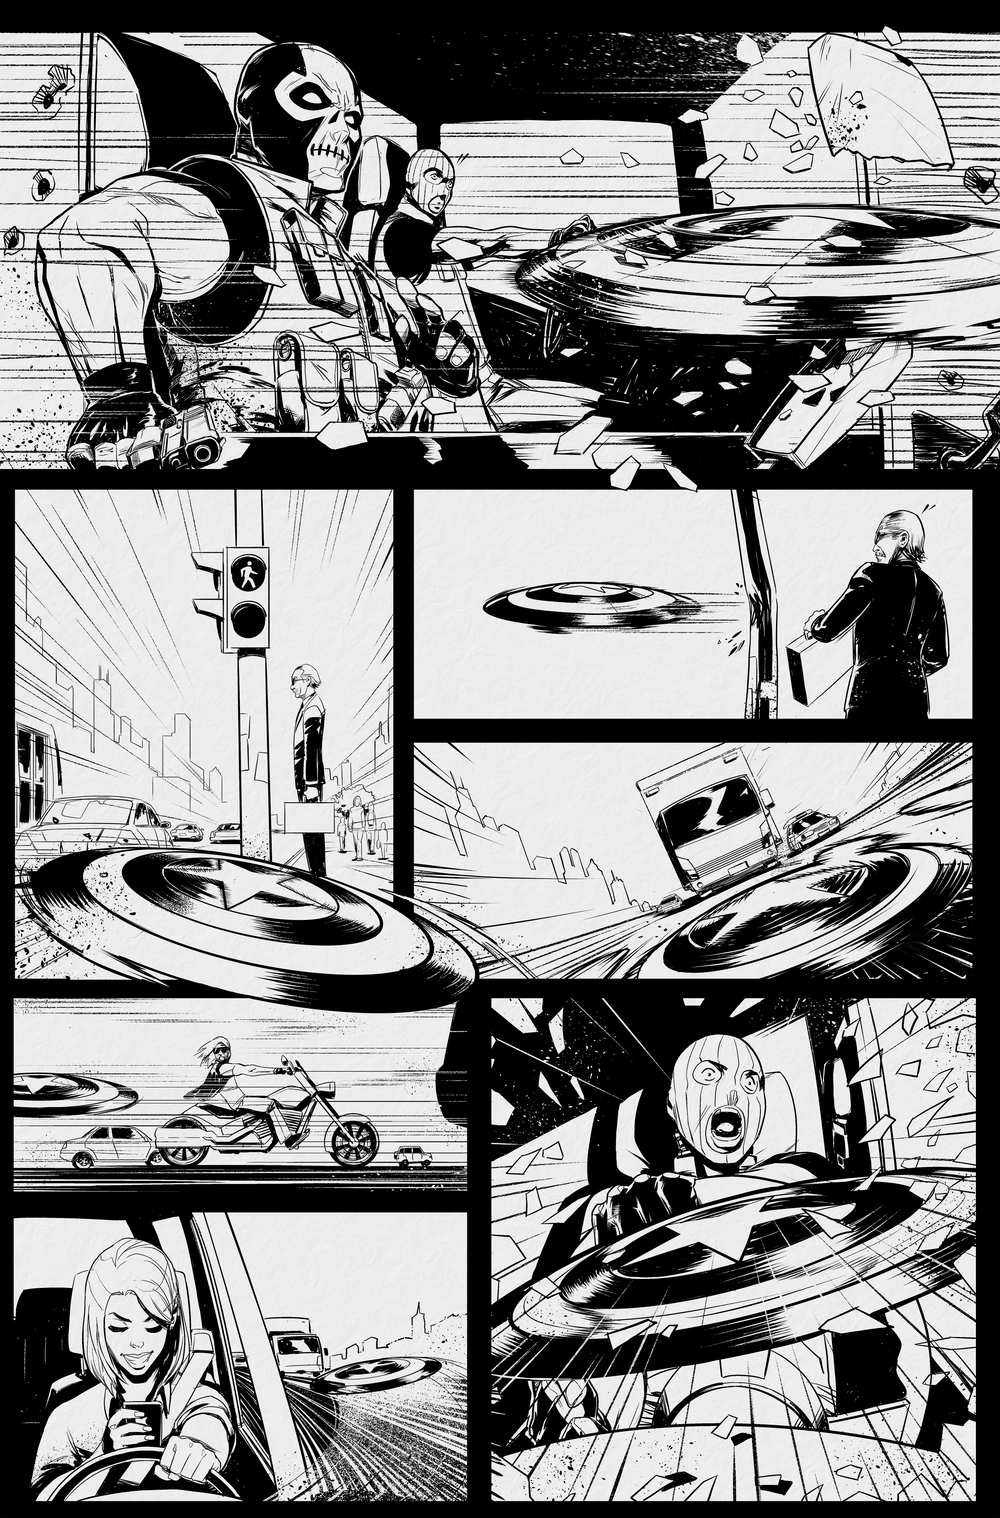 CAPTAIN AMERICA PAGE #2